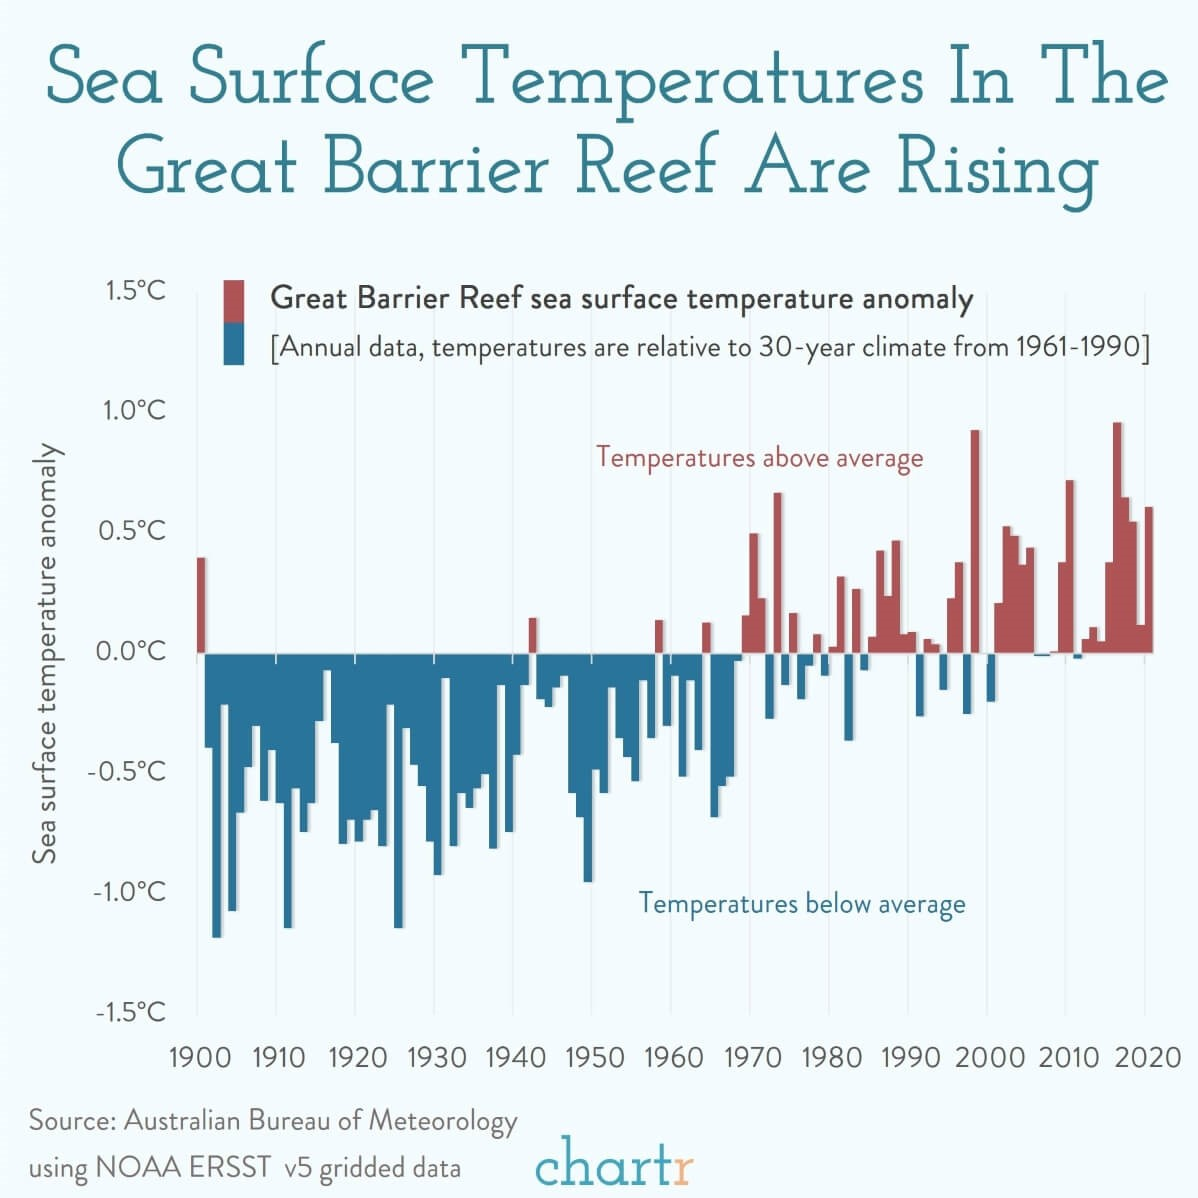 A graph from Chartr that shows steadily rising temperatures in the Great Barrier Reef from 1900 to 2020